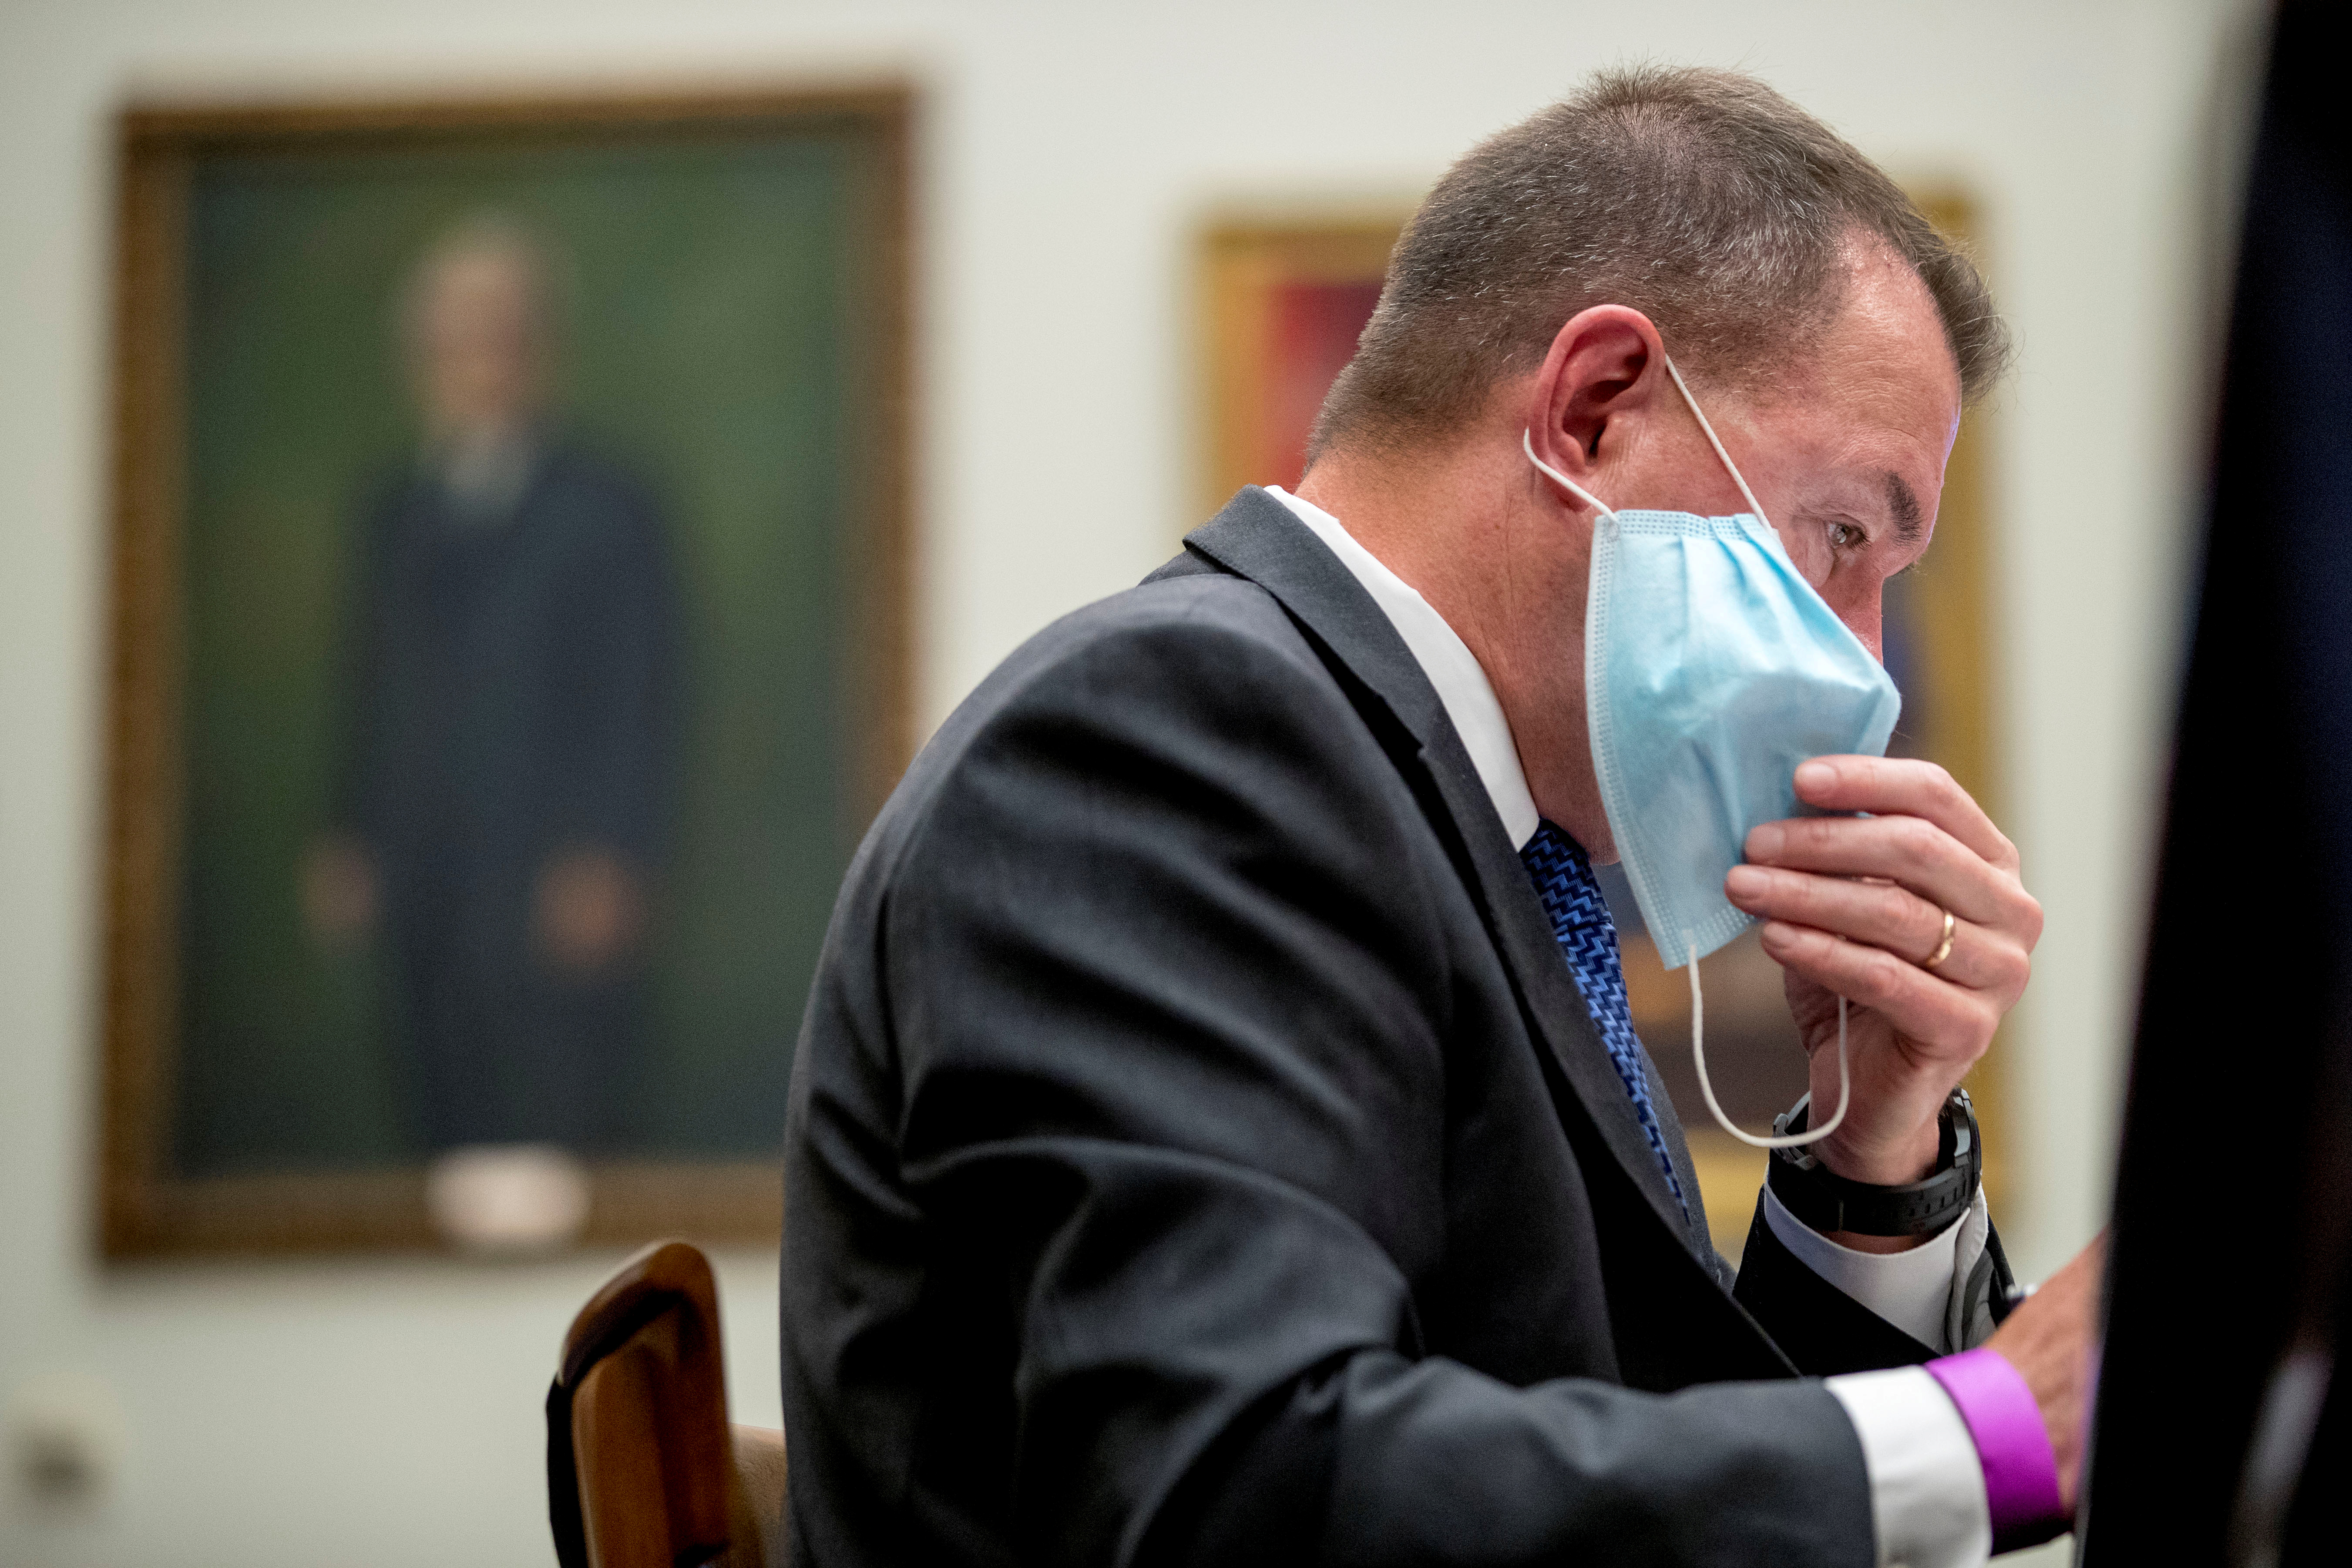 U.S. Federal Emergency Management Agency Administrator Peter Gaynor takes off his mask as he prepares to speak before the House Committee on Homeland Security meeting on the national response to the coronavirus pandemic on Capitol Hill in Washington, July 22, 2020. Andrew Harnik/Pool via REUTERS/File Photo